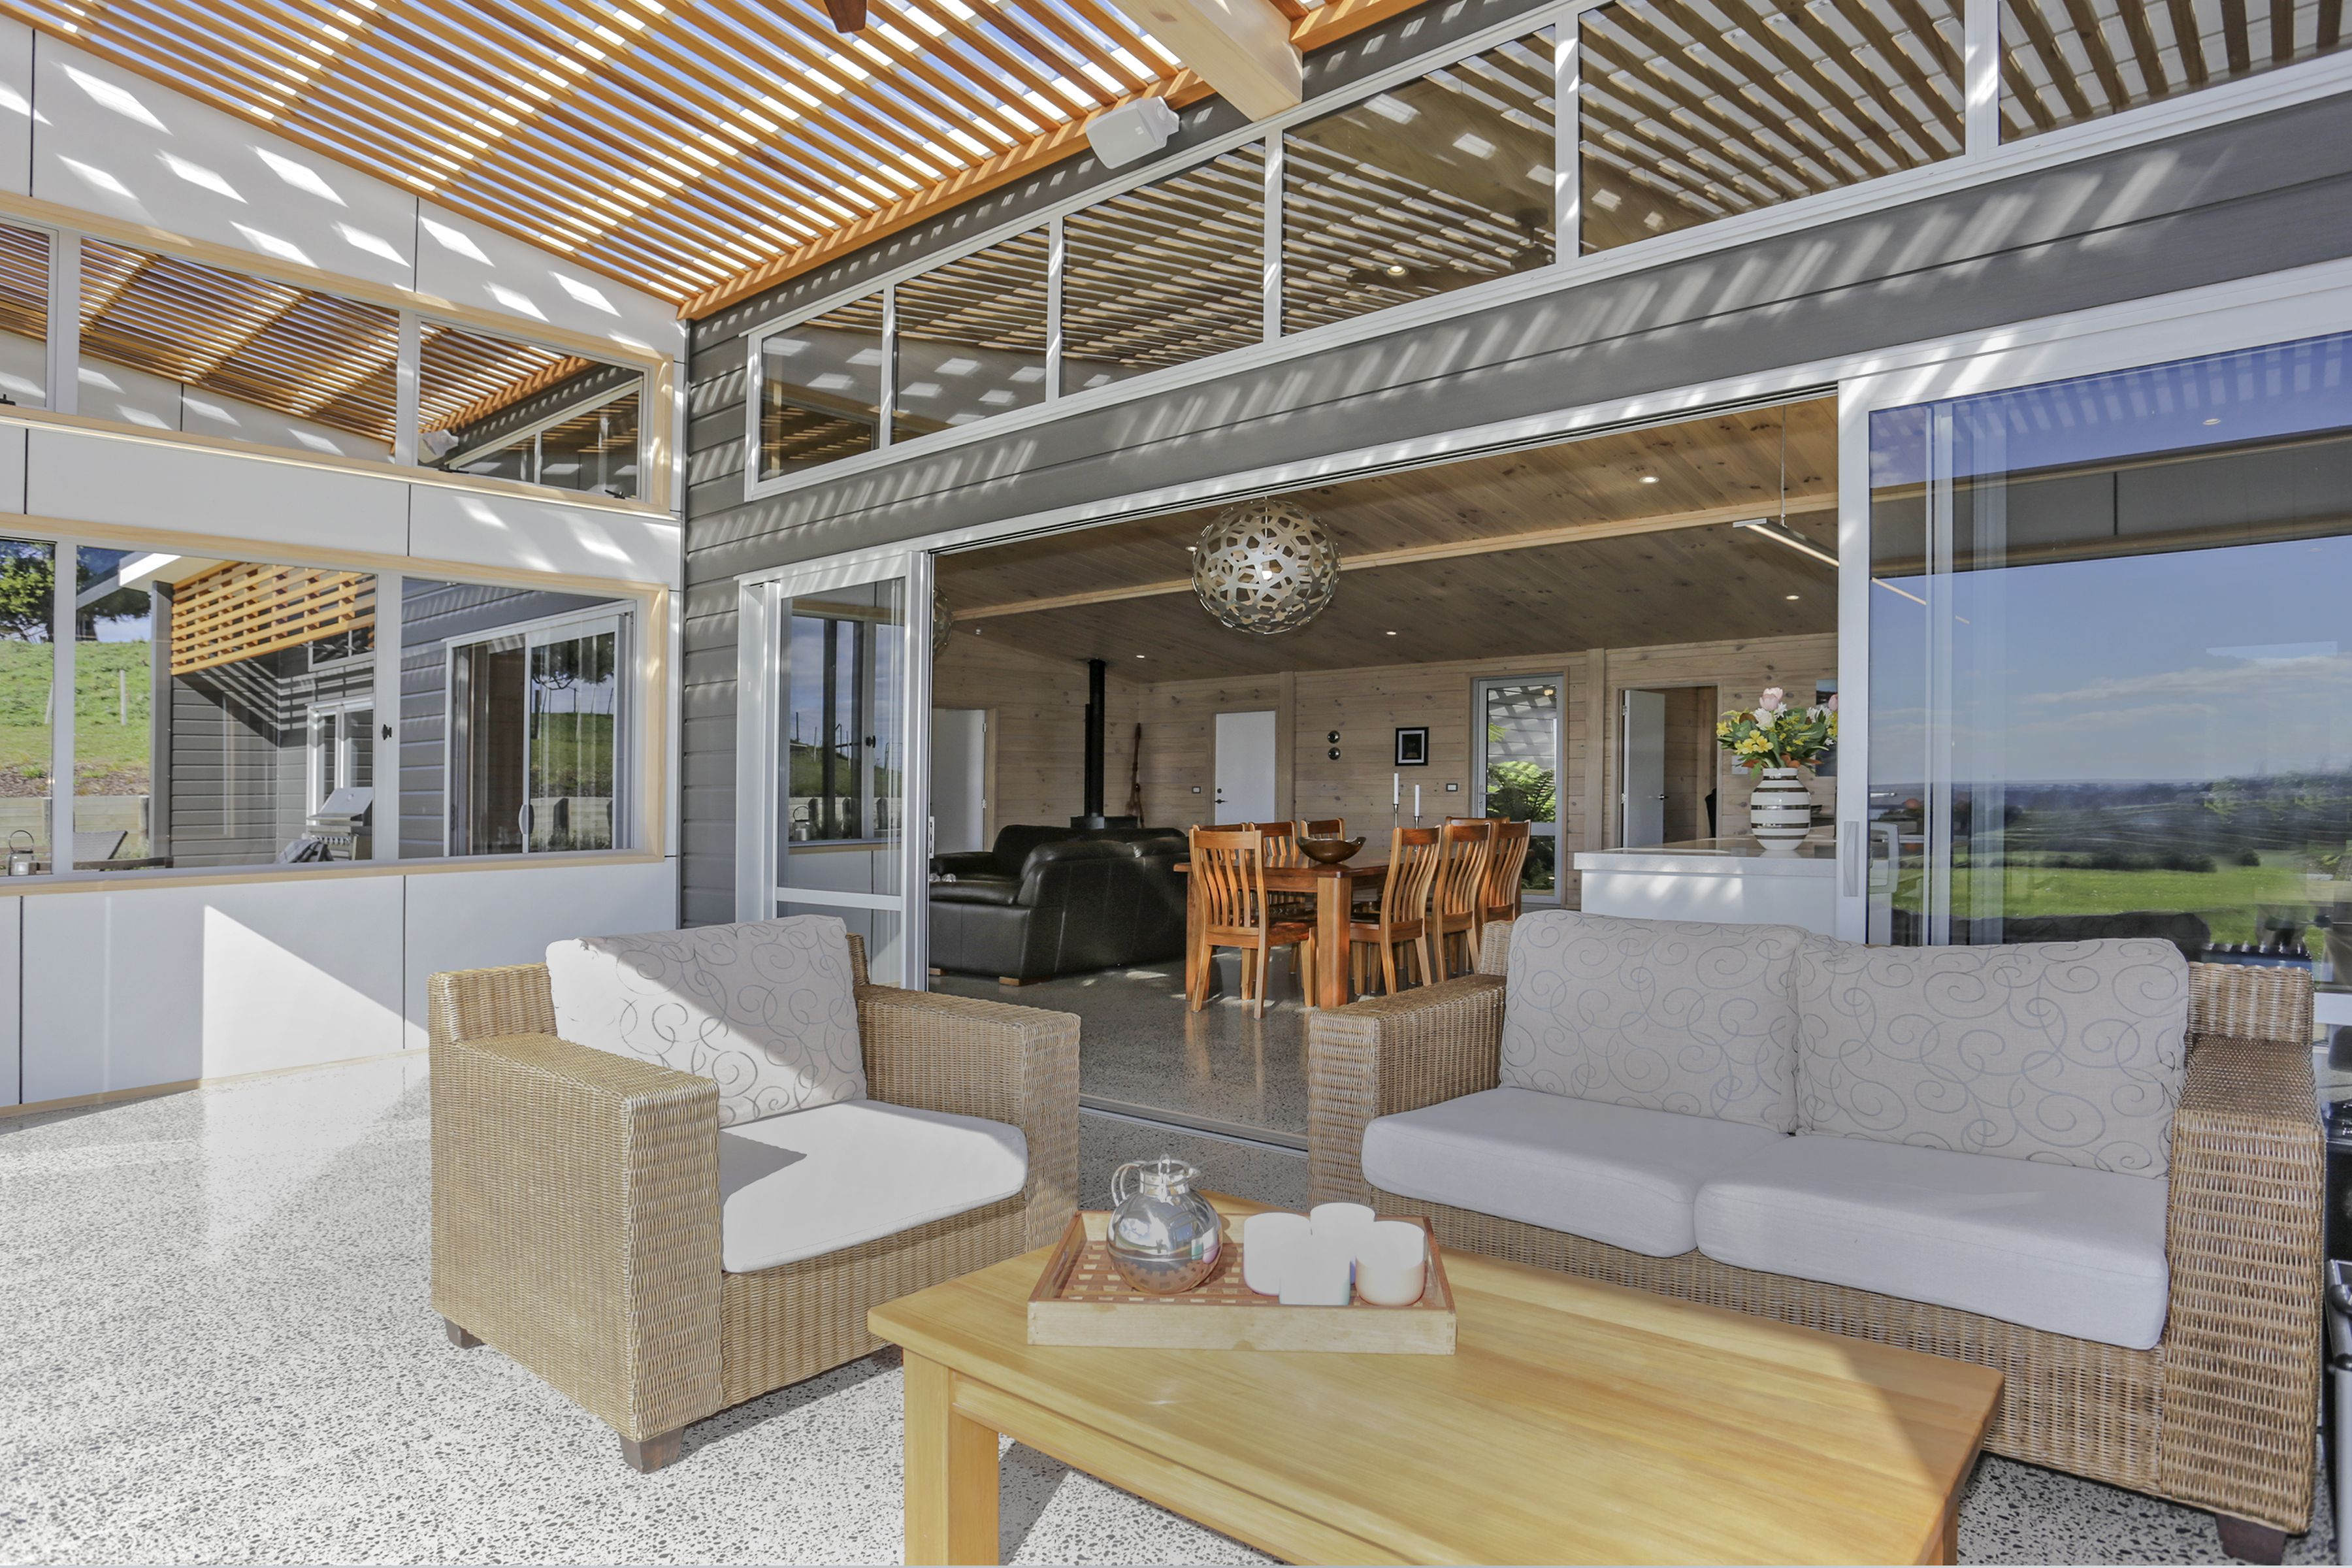 Indoor / outdoor living at its best! (With images) | New ... on Bespoke Outdoor Living id=29967